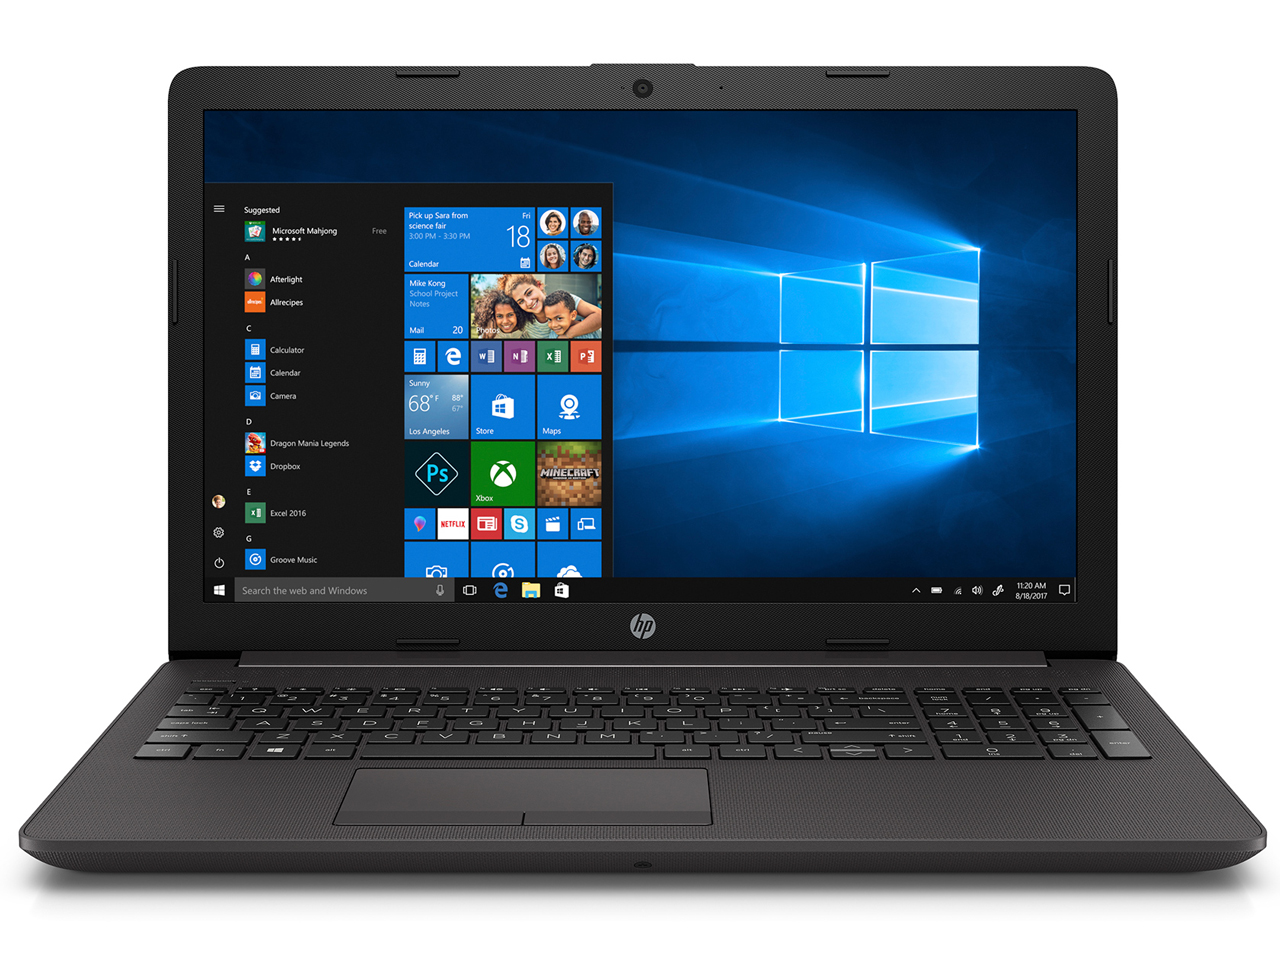 HP 255 G7 Notebook PC 6MF69PA ベーシックモデル